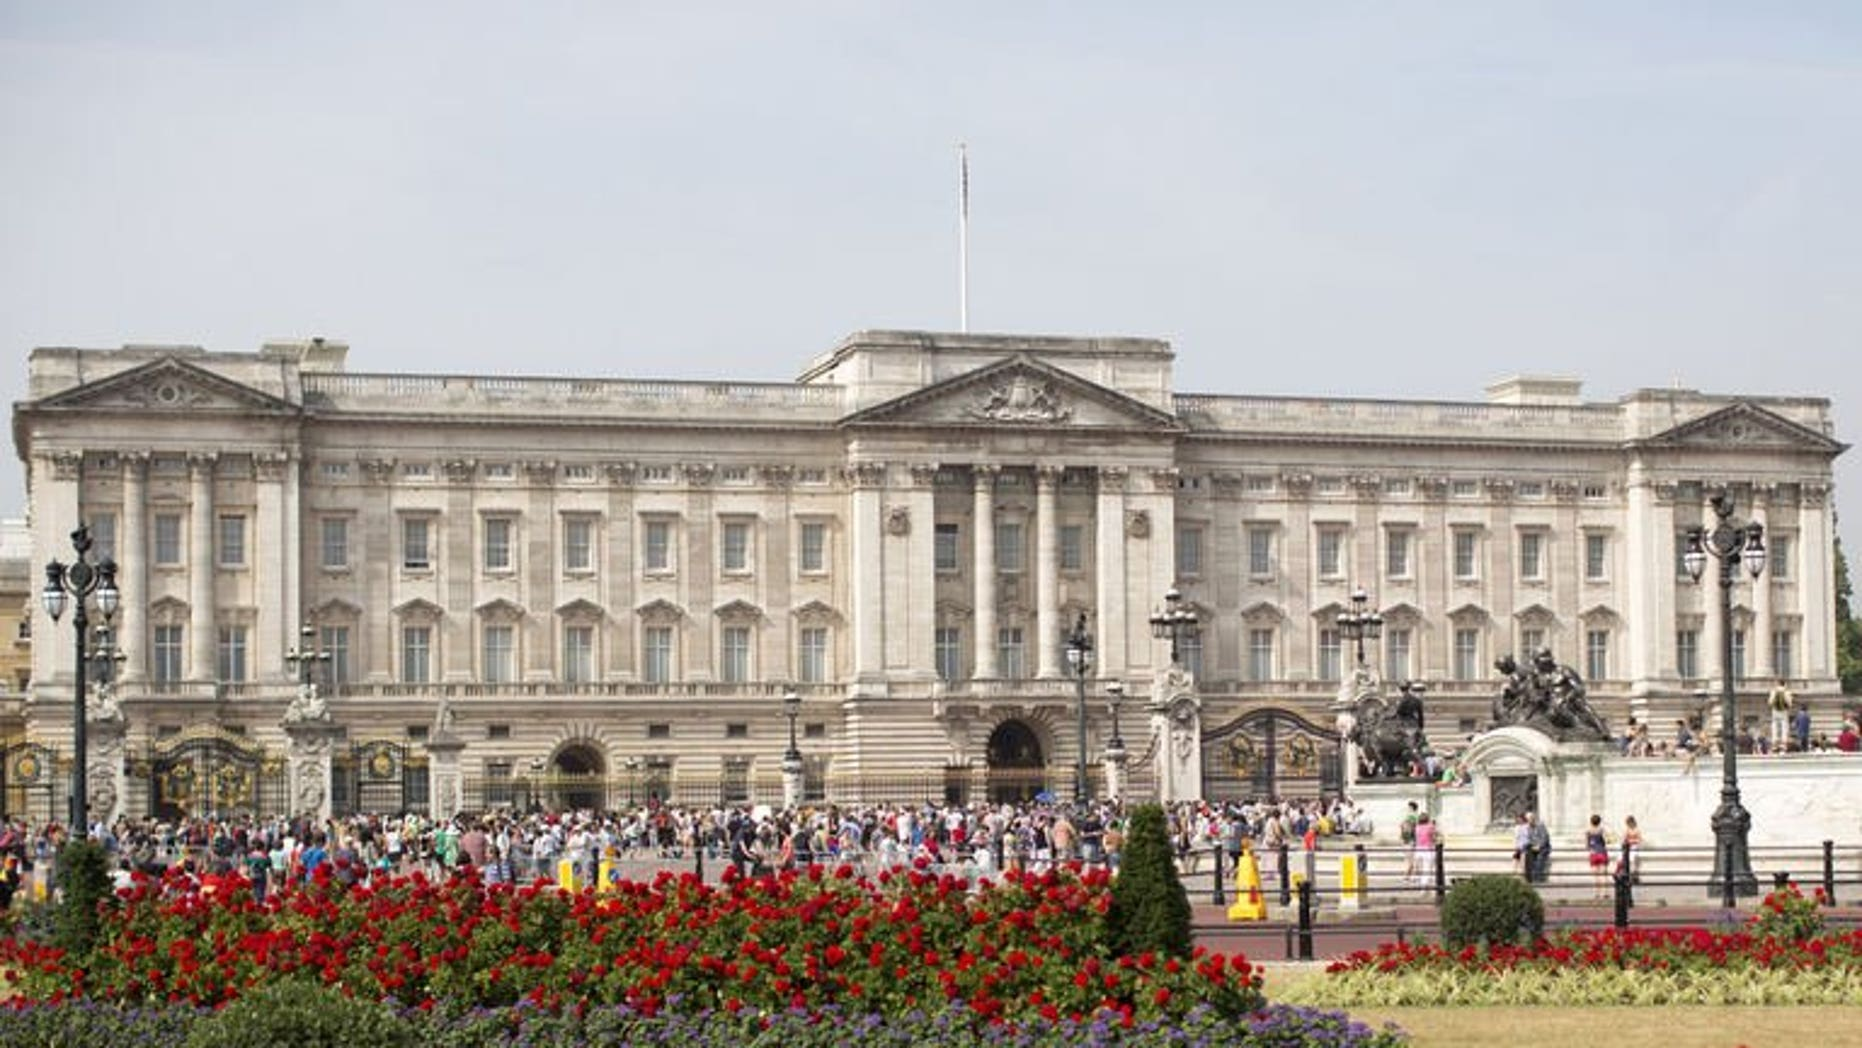 Tourists gather outside Buckingham Palace in central London on July 22, 2013. British police said they had arrested a man who scaled a fence to get into the palace, the official London residence of Queen Elizabeth II.